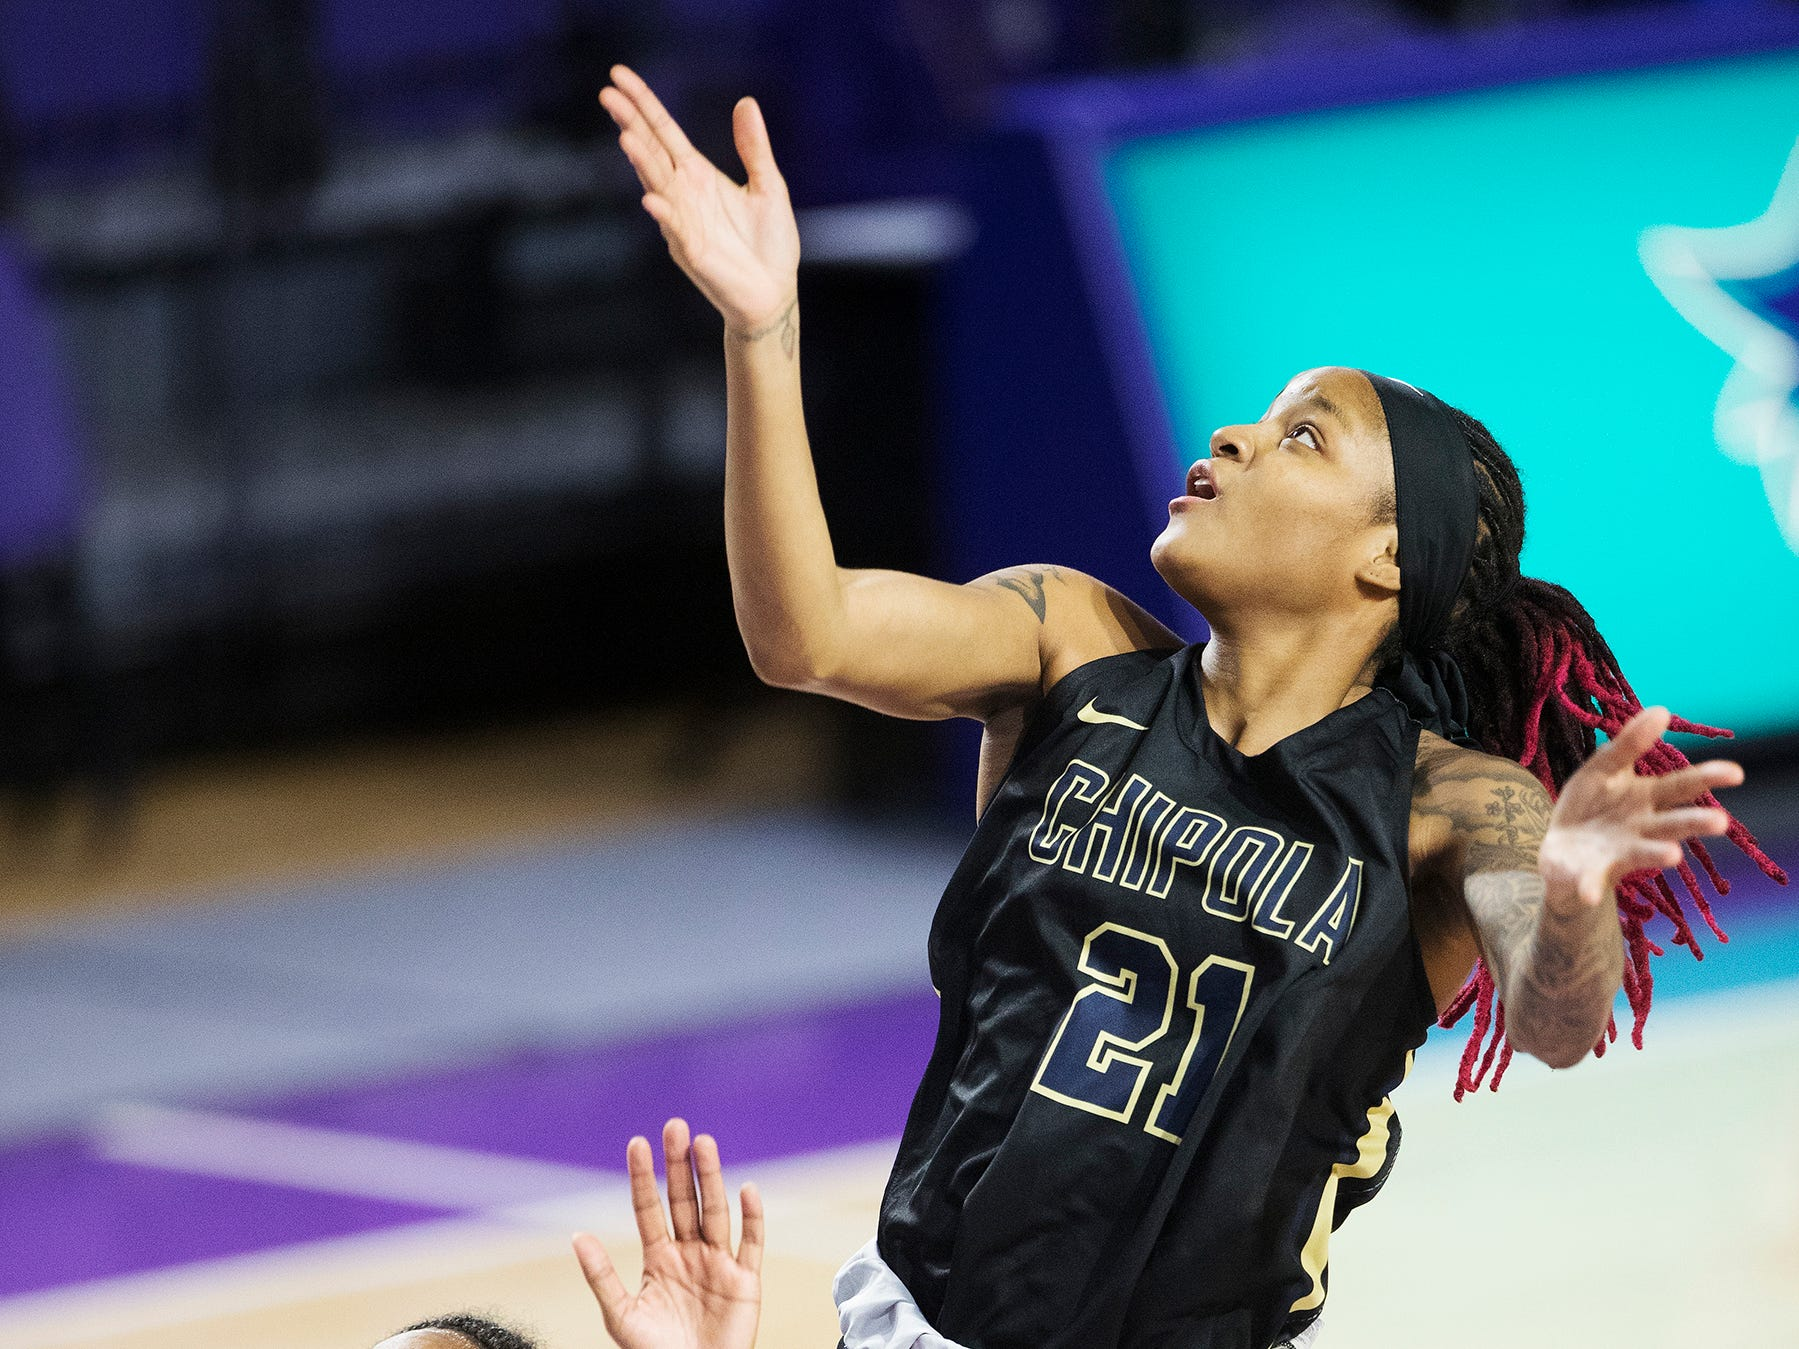 Chipola College's Dekeriya Patterson, a Dunbar High School graduate, returned to Fort Myers recently to play ASA Miami in the Florida Junior College Shootout at Suncoast Credit Union Arena. Patterson scored 25 points in Chipola's 75-40 win.